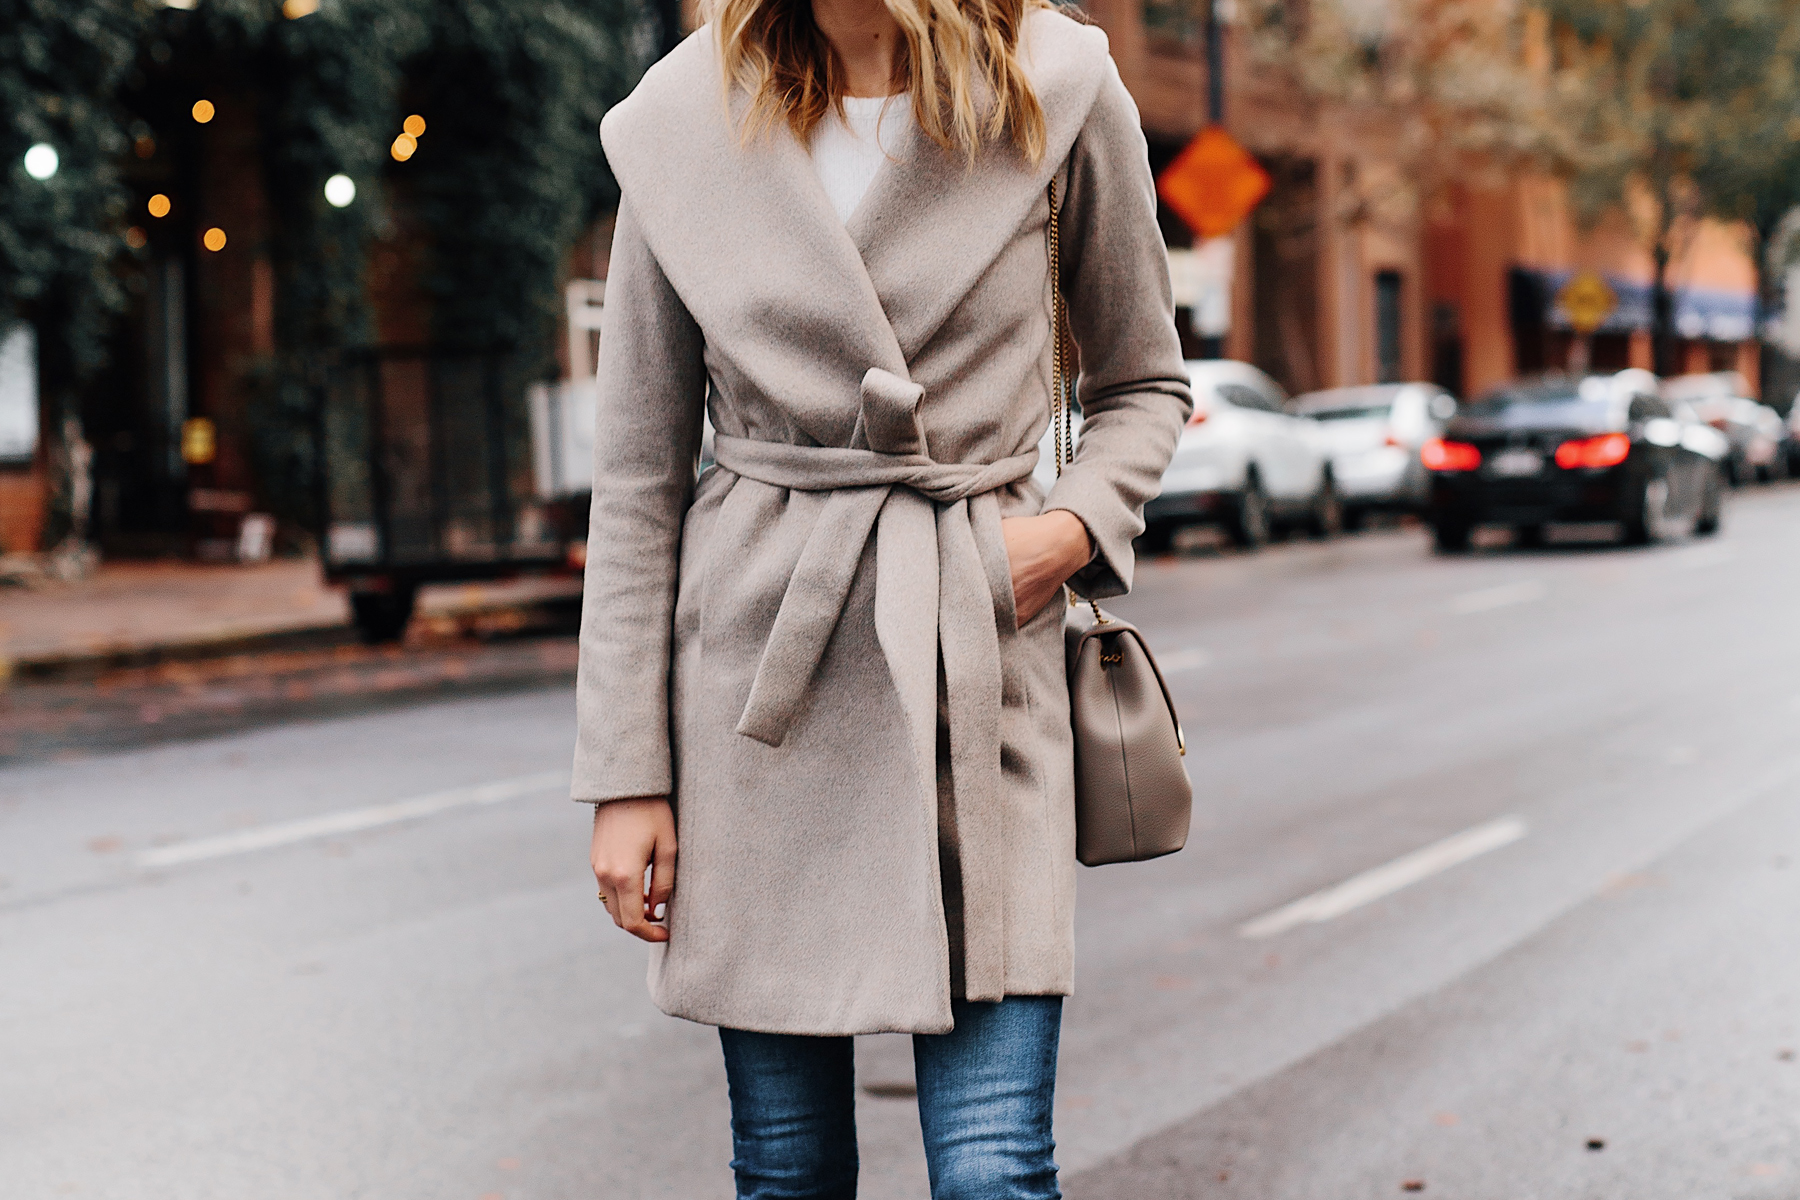 Blonde Woman Wearing Ann Taylor Beige Wrap Coat Fashion Jackson San Diego Fashion Blogger Street Style